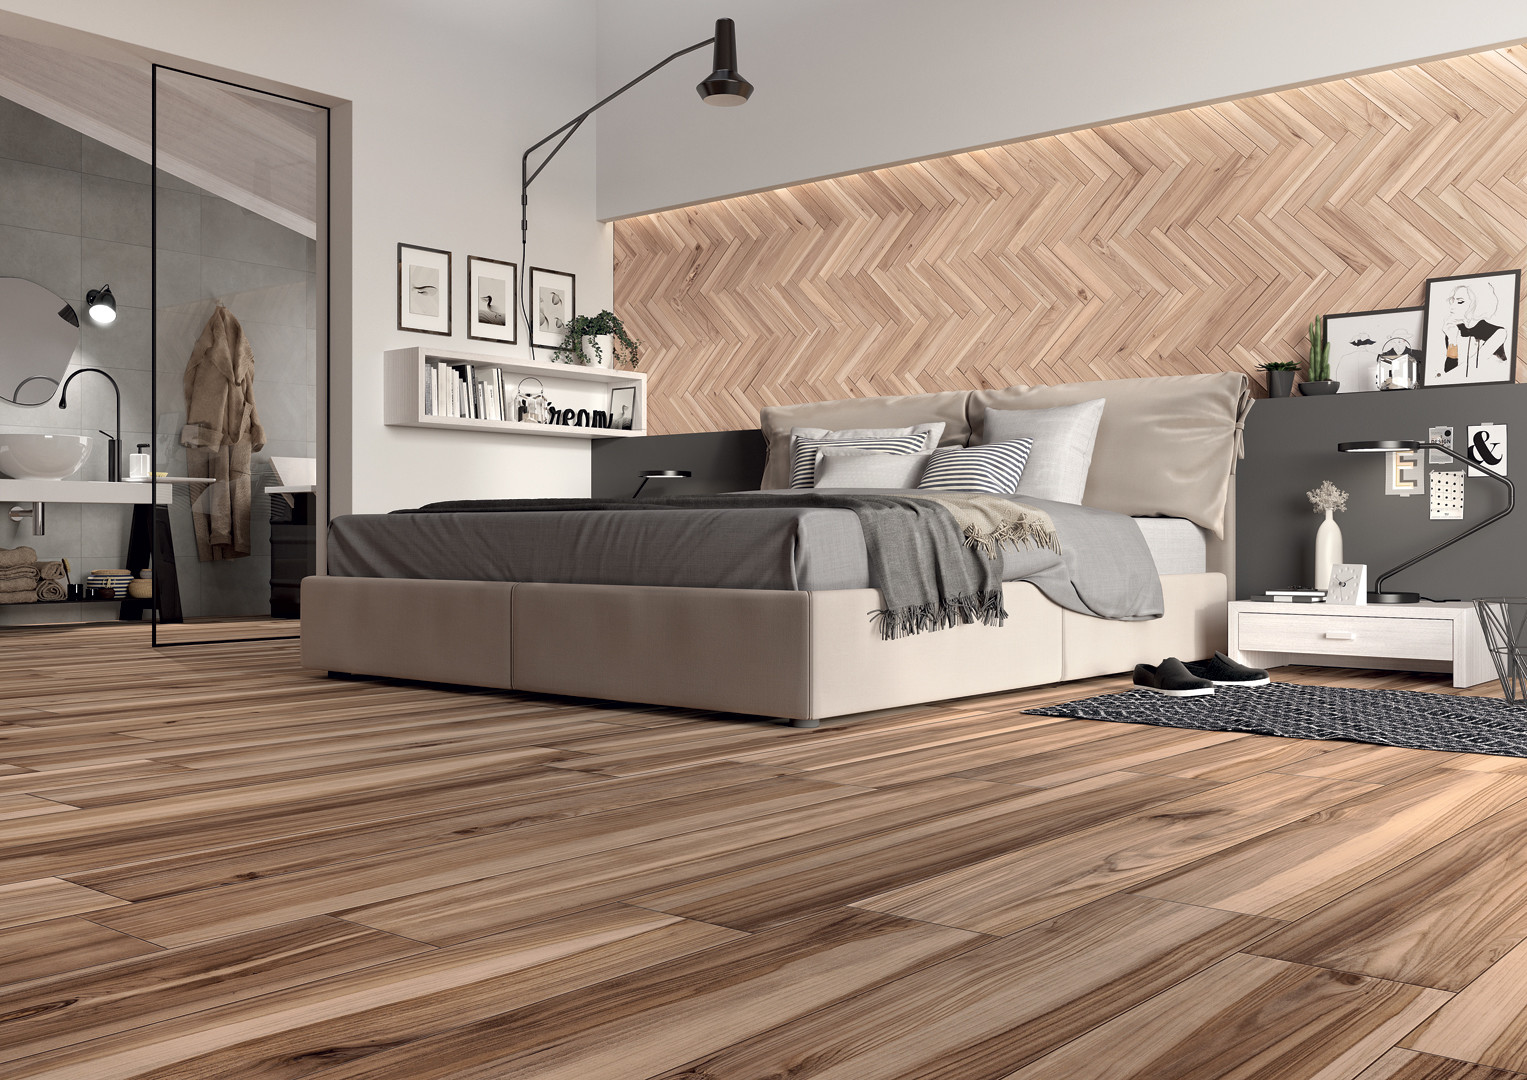 hardwood flooring distributors of koru the types of wood of fruit trees mirage in bedroom koru 3 cmyk